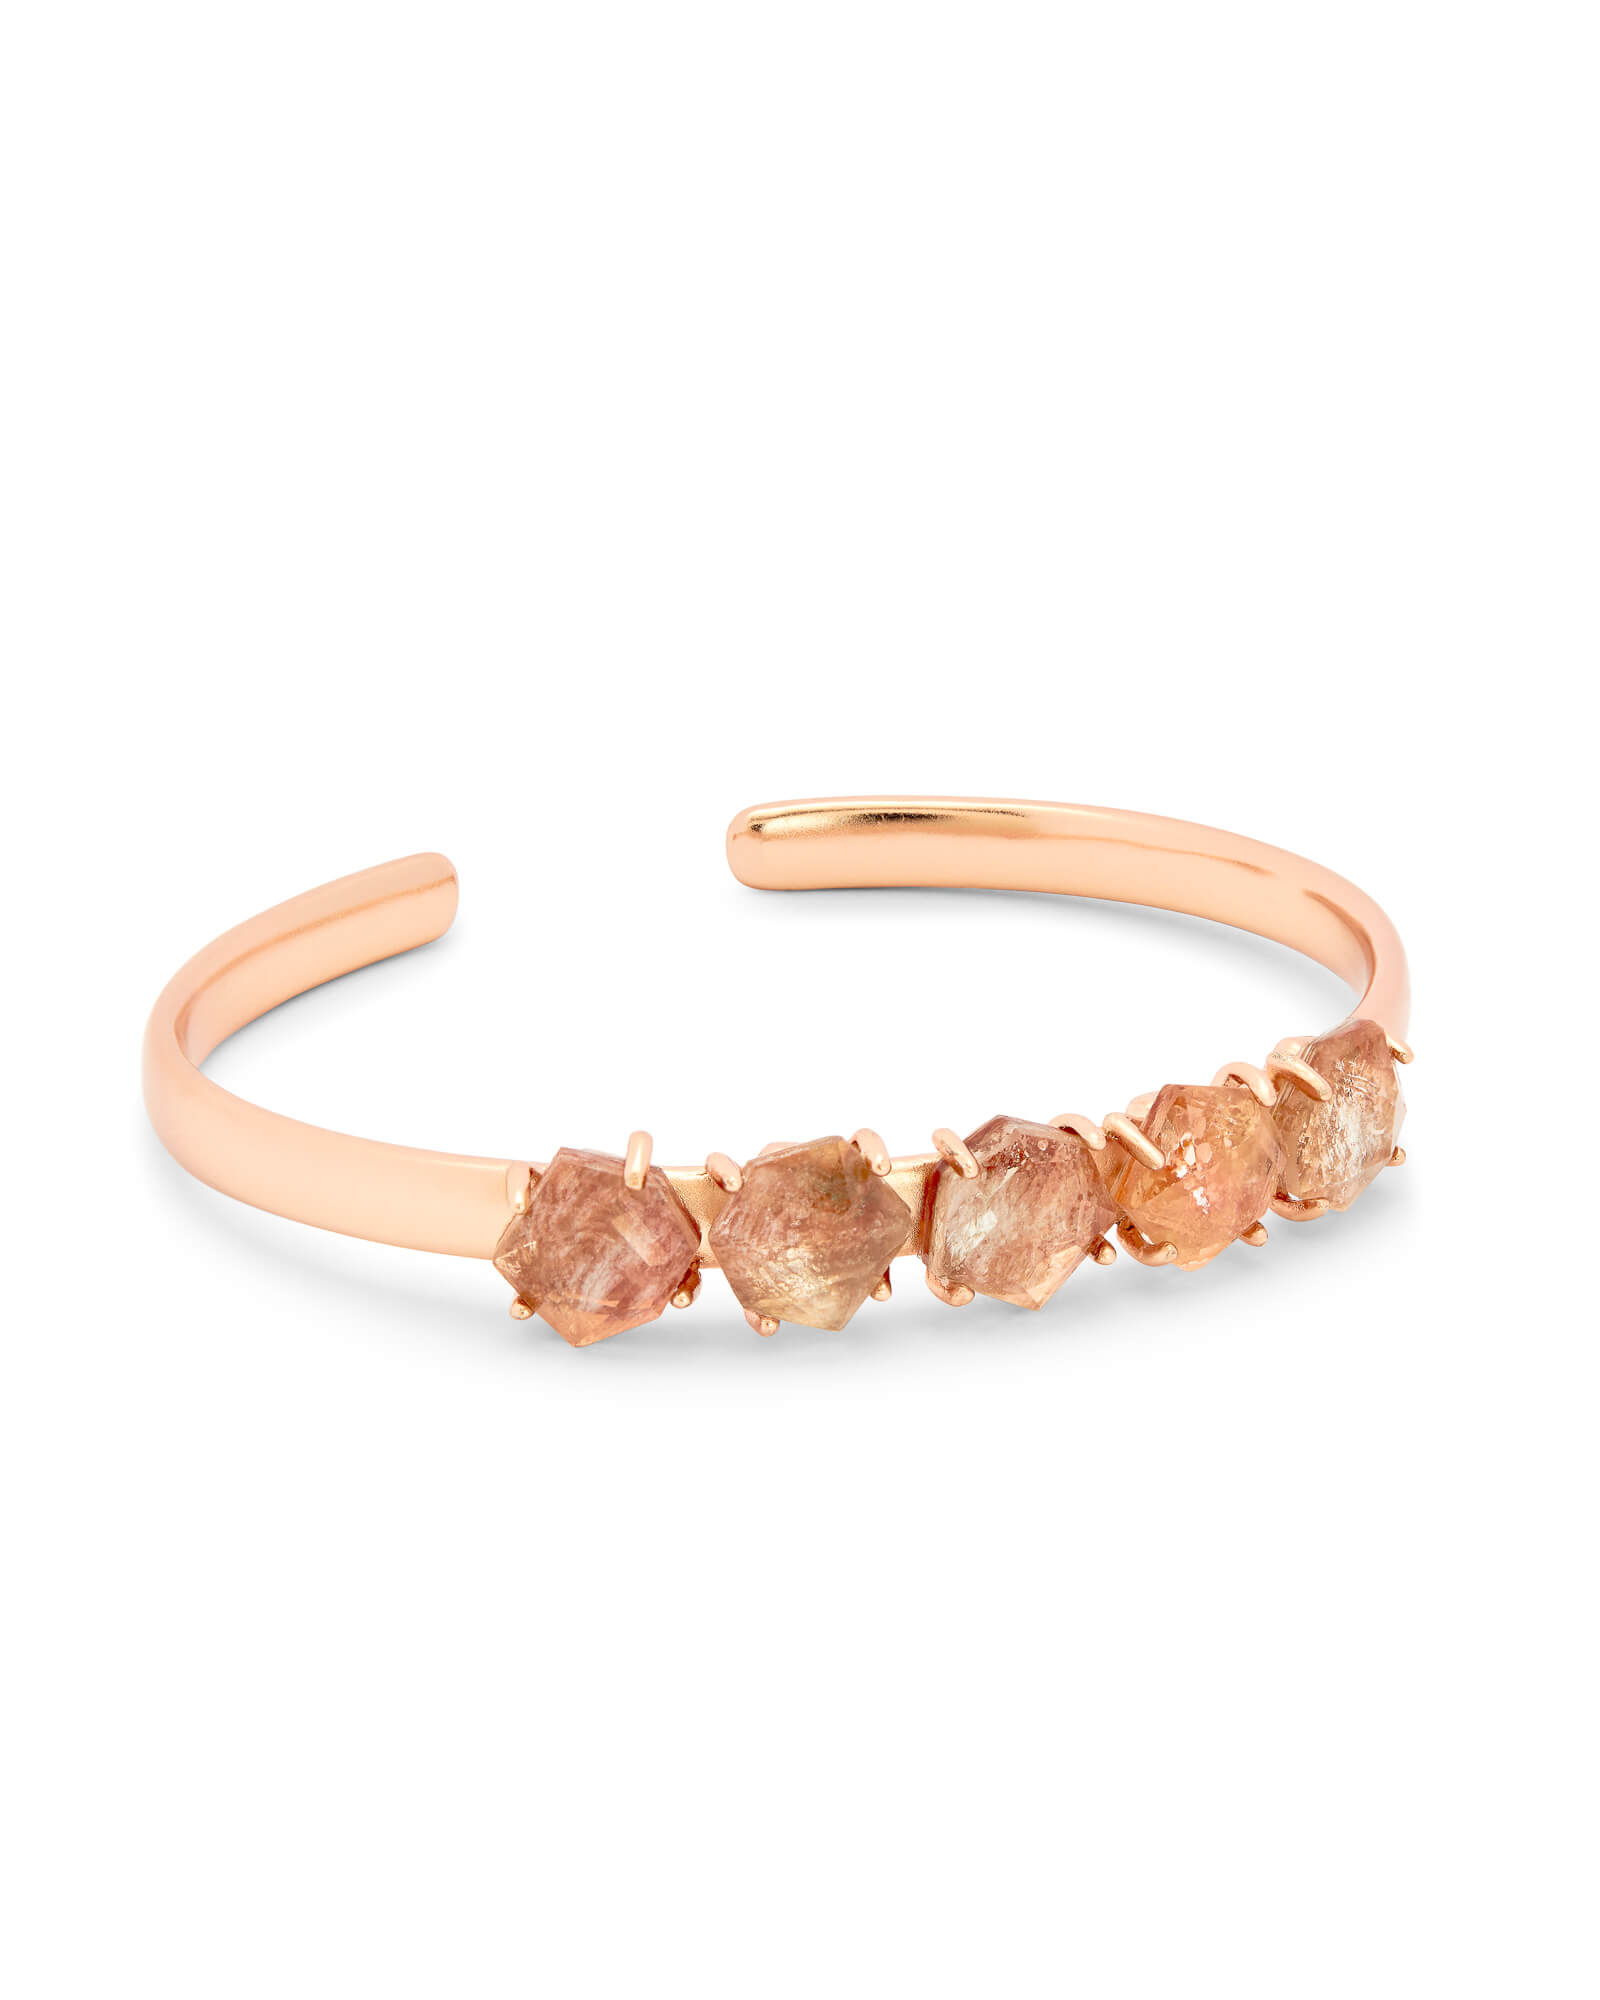 Nash Rose Gold Adjustable Bracelet in Sable Mica